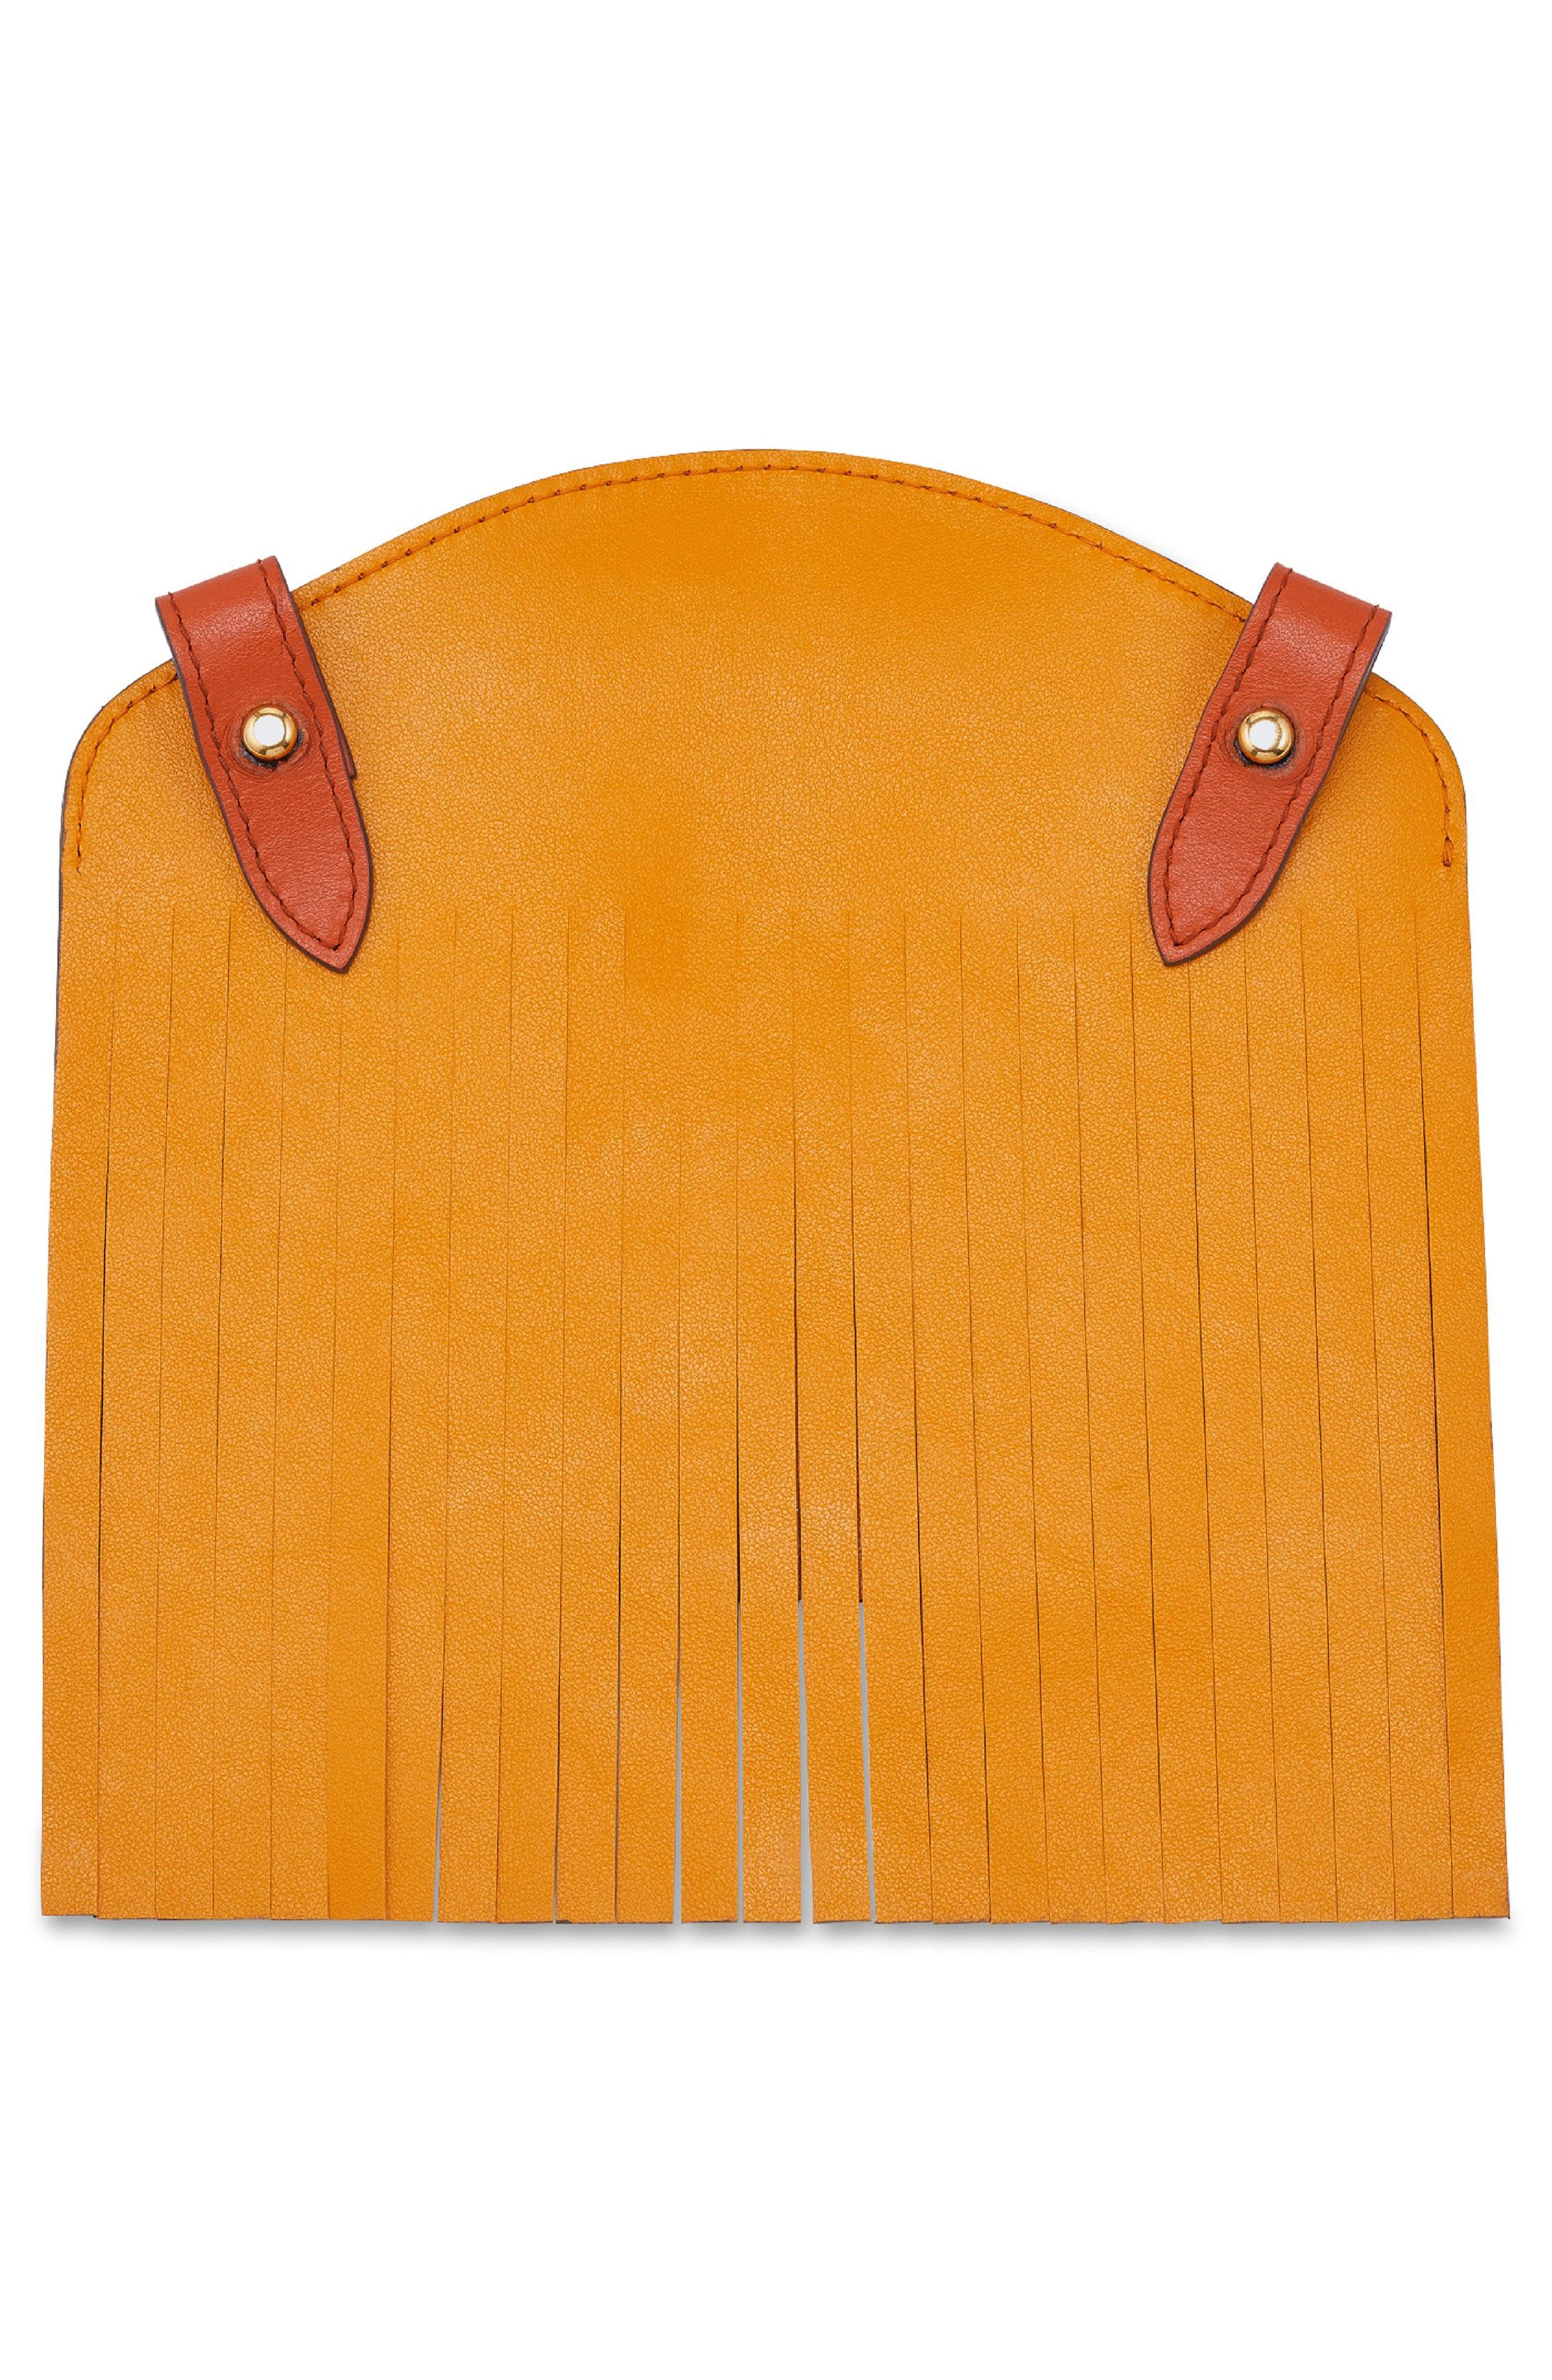 Build a Bag Fringe Leather Panels,                             Alternate thumbnail 6, color,